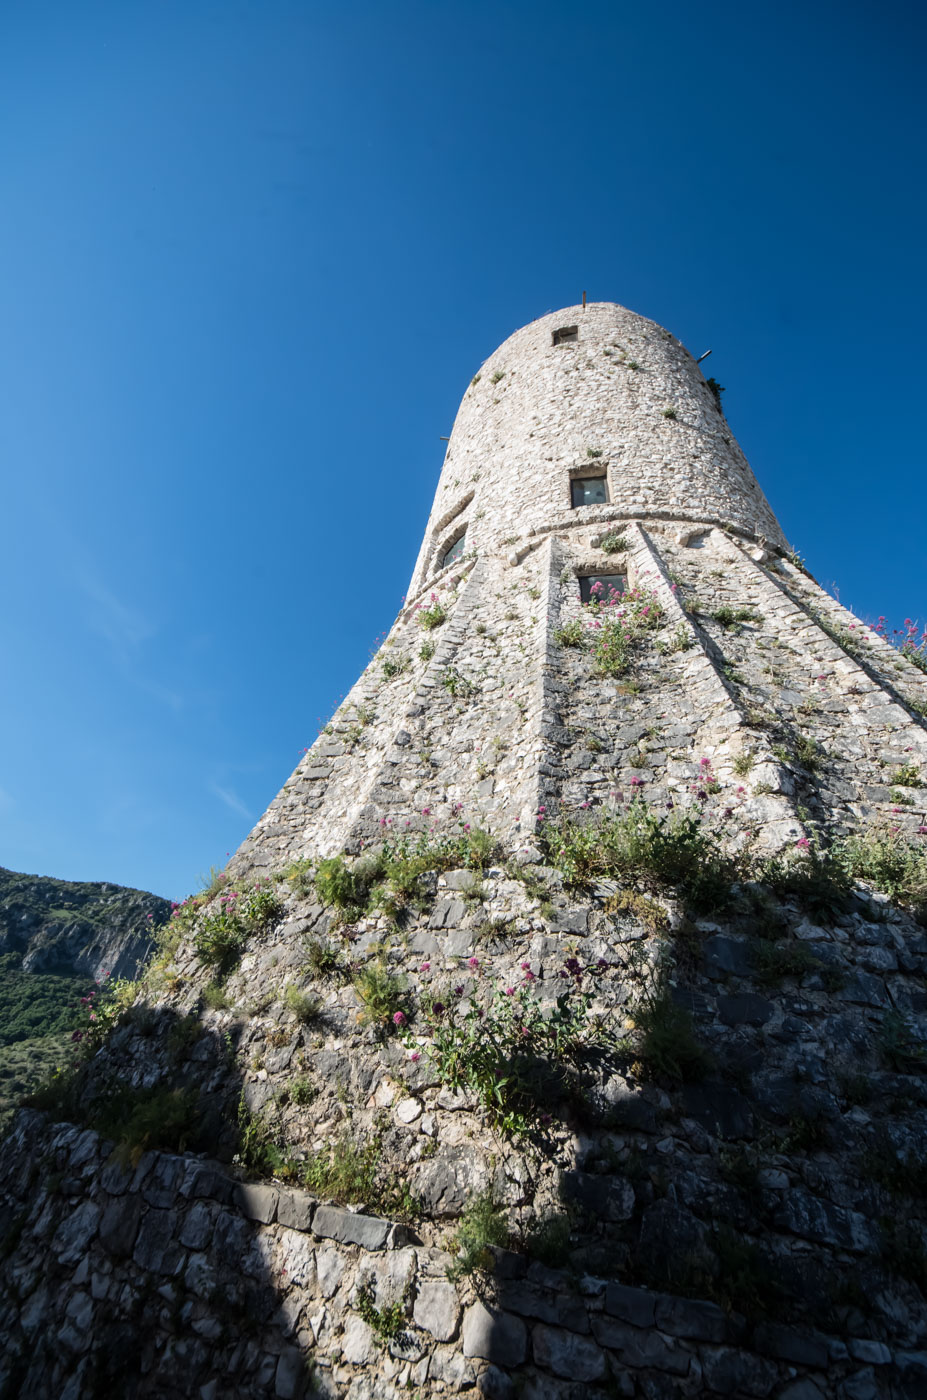 14th century living tower, that was the start of what late became the town of Castelcivita.